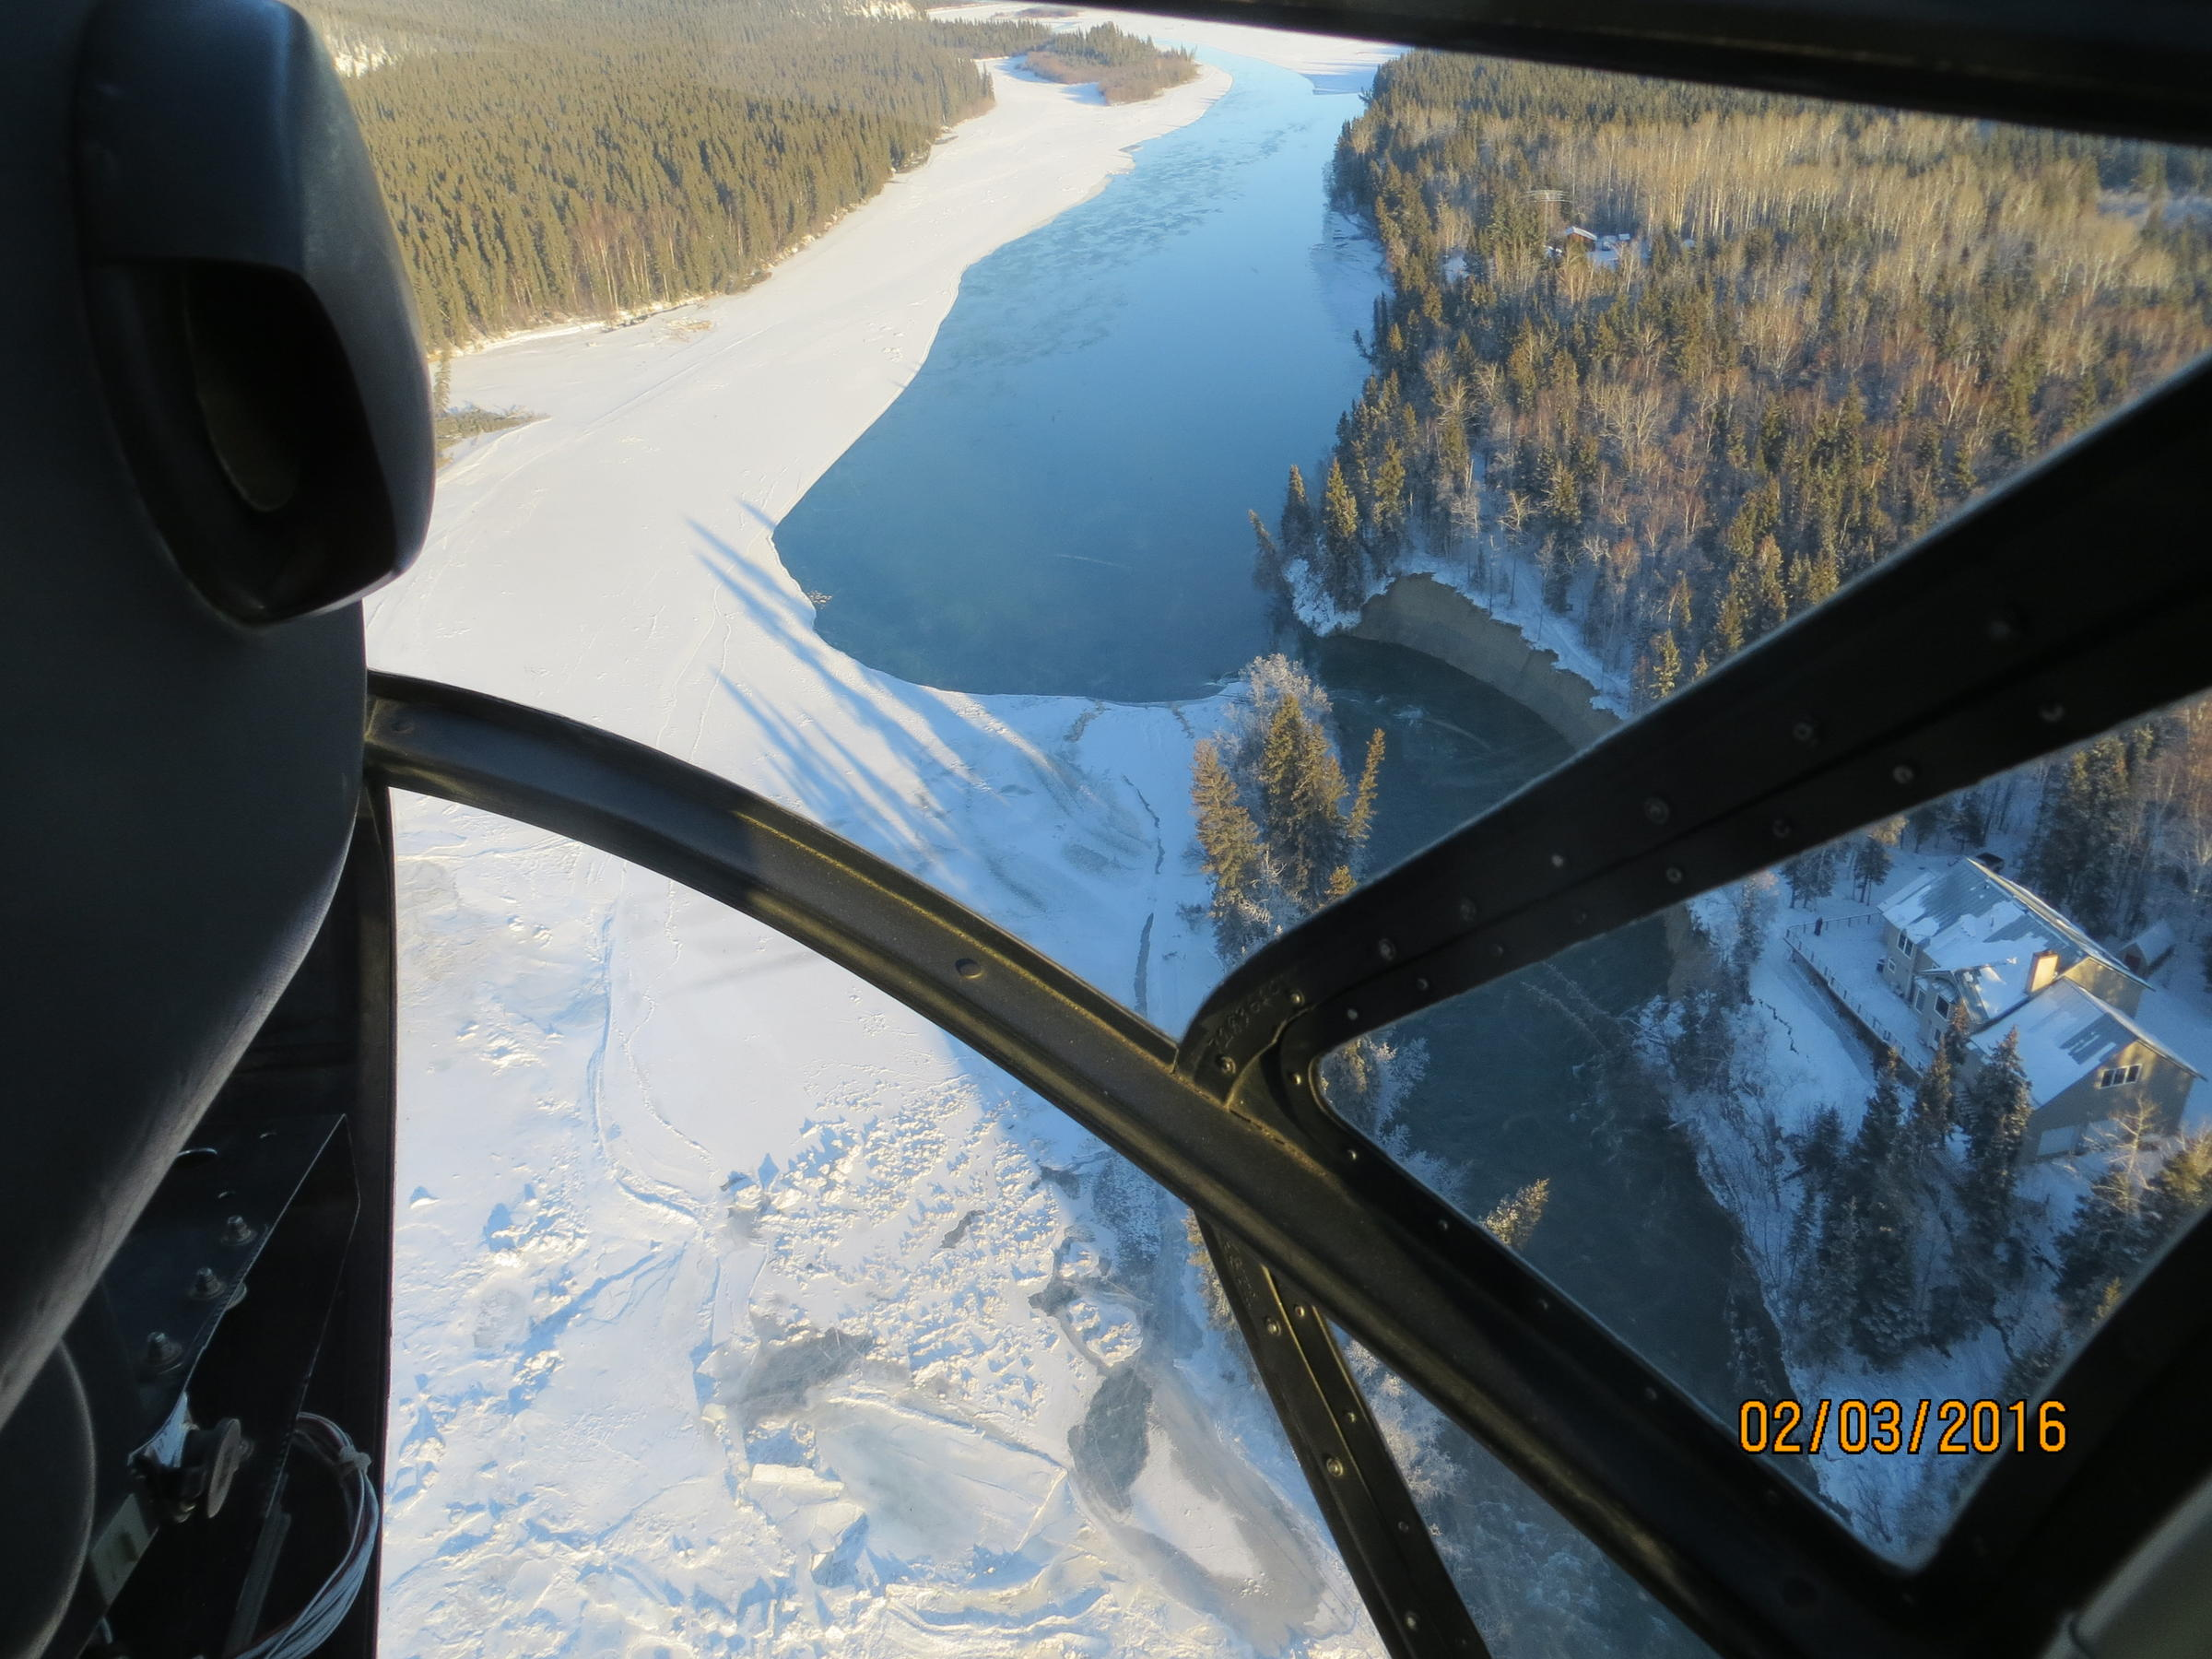 An aerial view showing how ice diverted much of the Tanana River into the small slough at the foot of the ridge on which Gorman built his home. (Photo courtesy of Tom Gorman)